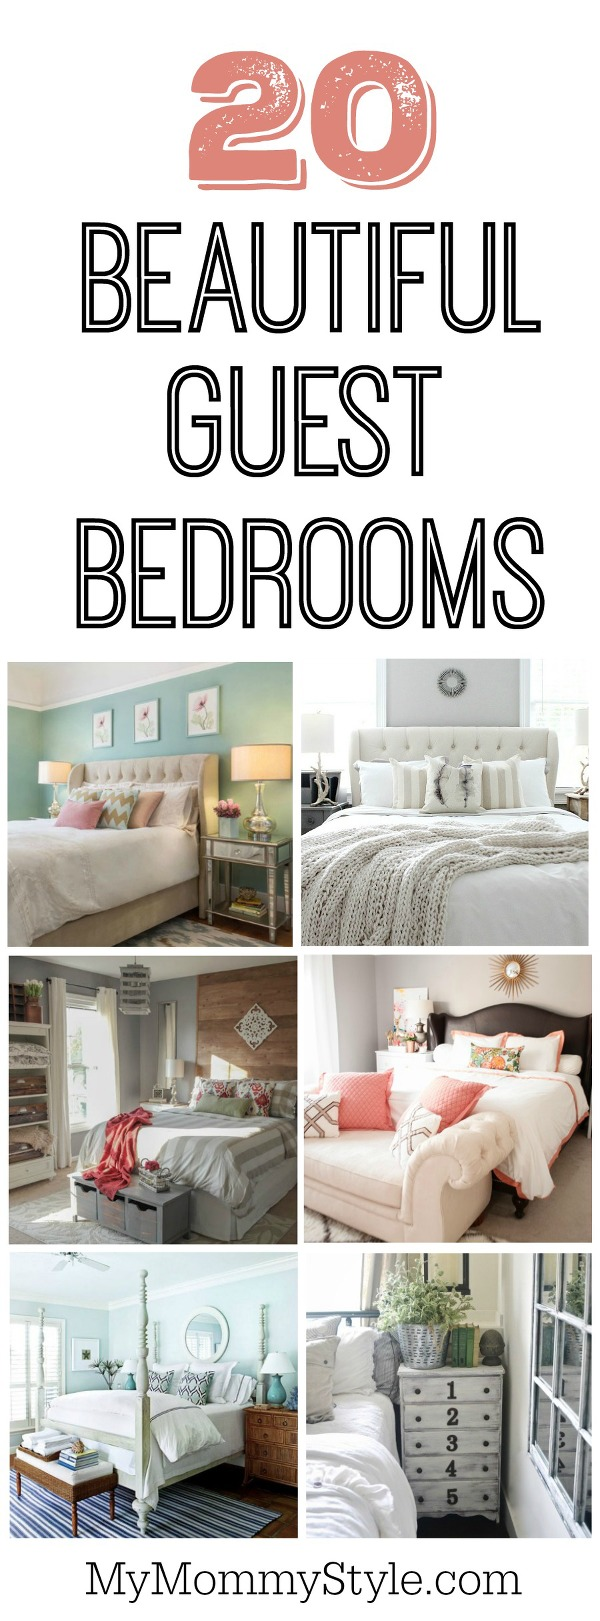 20 beautiful guest bedroom ideas my mommy style for Decorating spare bedroom ideas